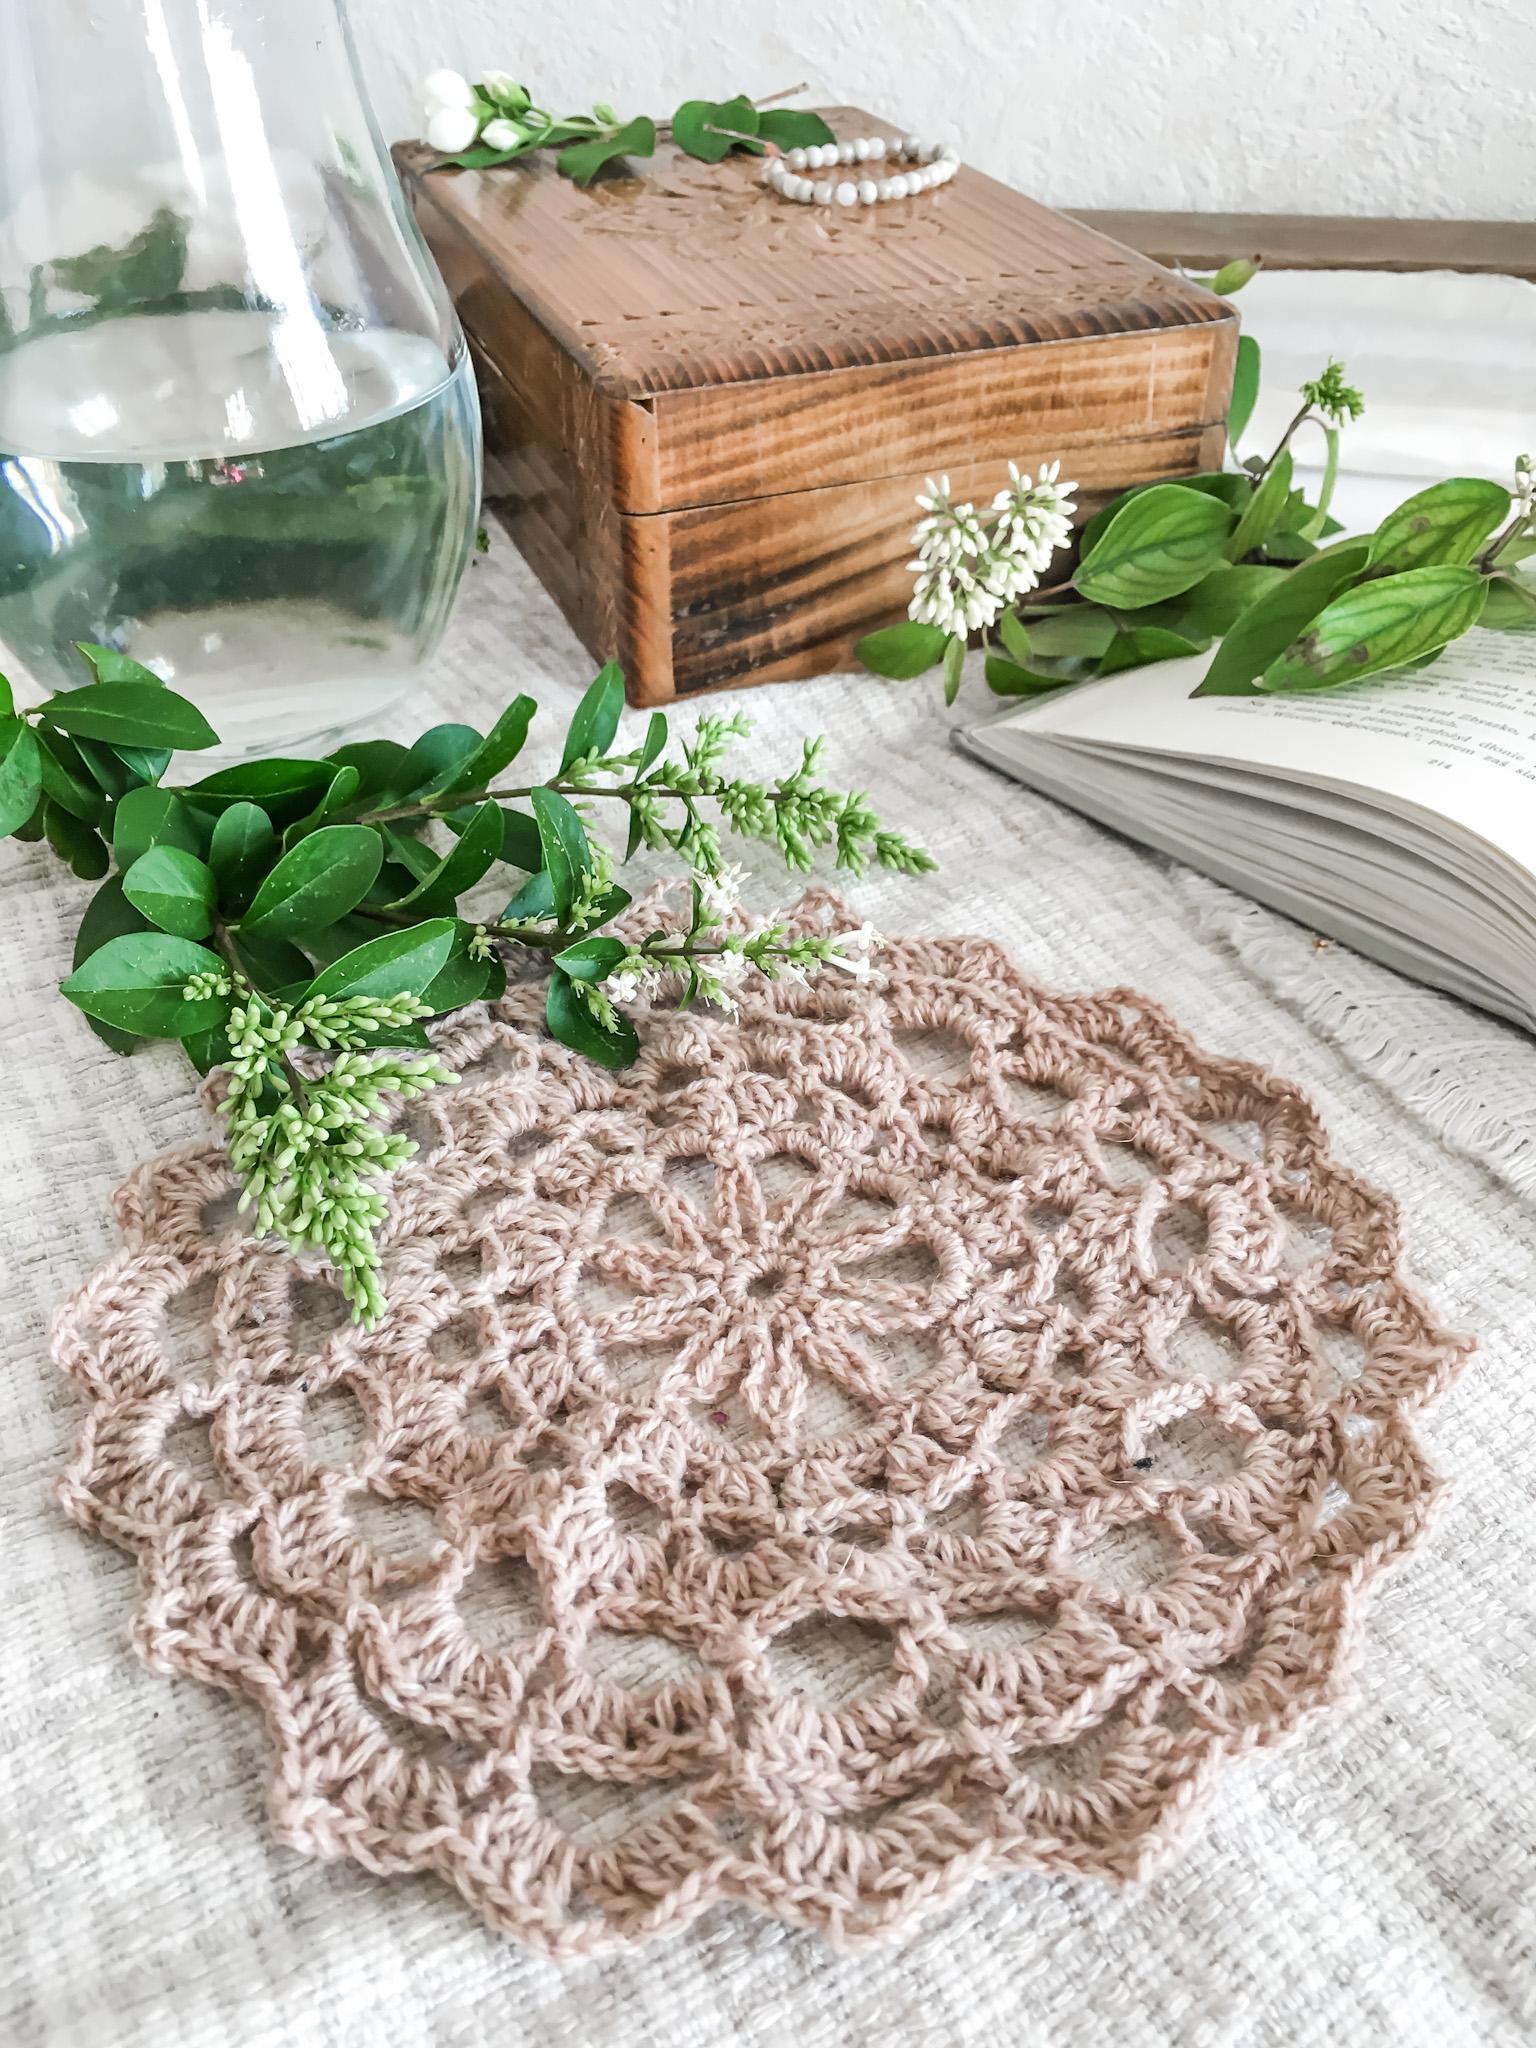 Crochet doily plus a free pattern.